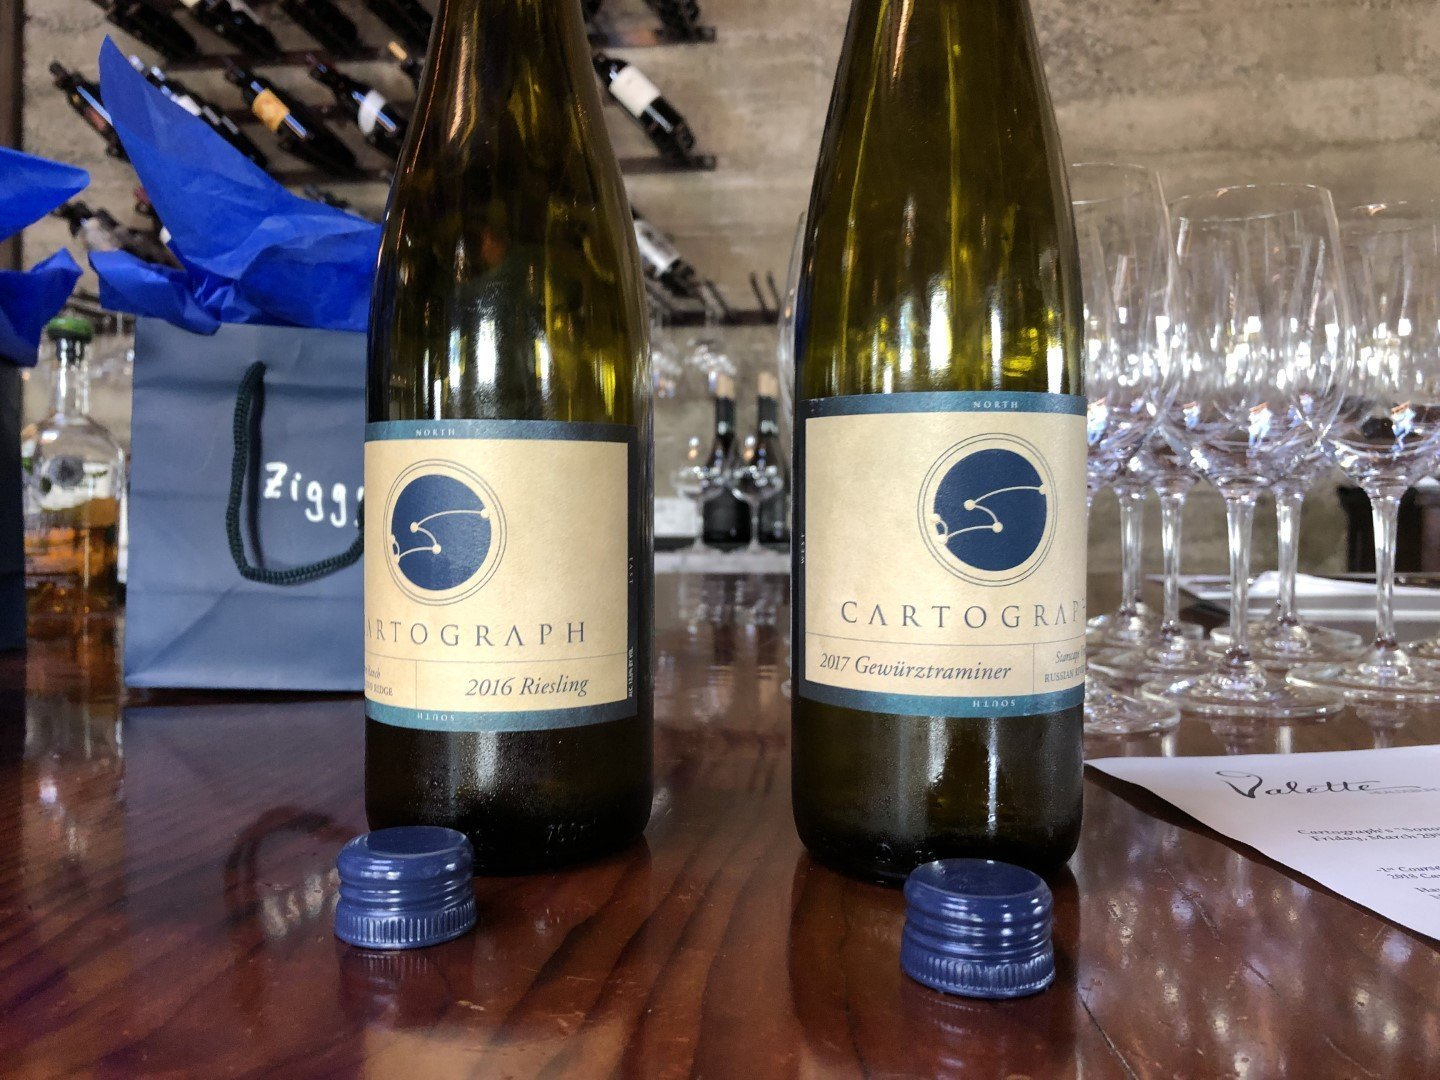 Cartograph 2012 Floodgate Vineyard Gewürztraminer